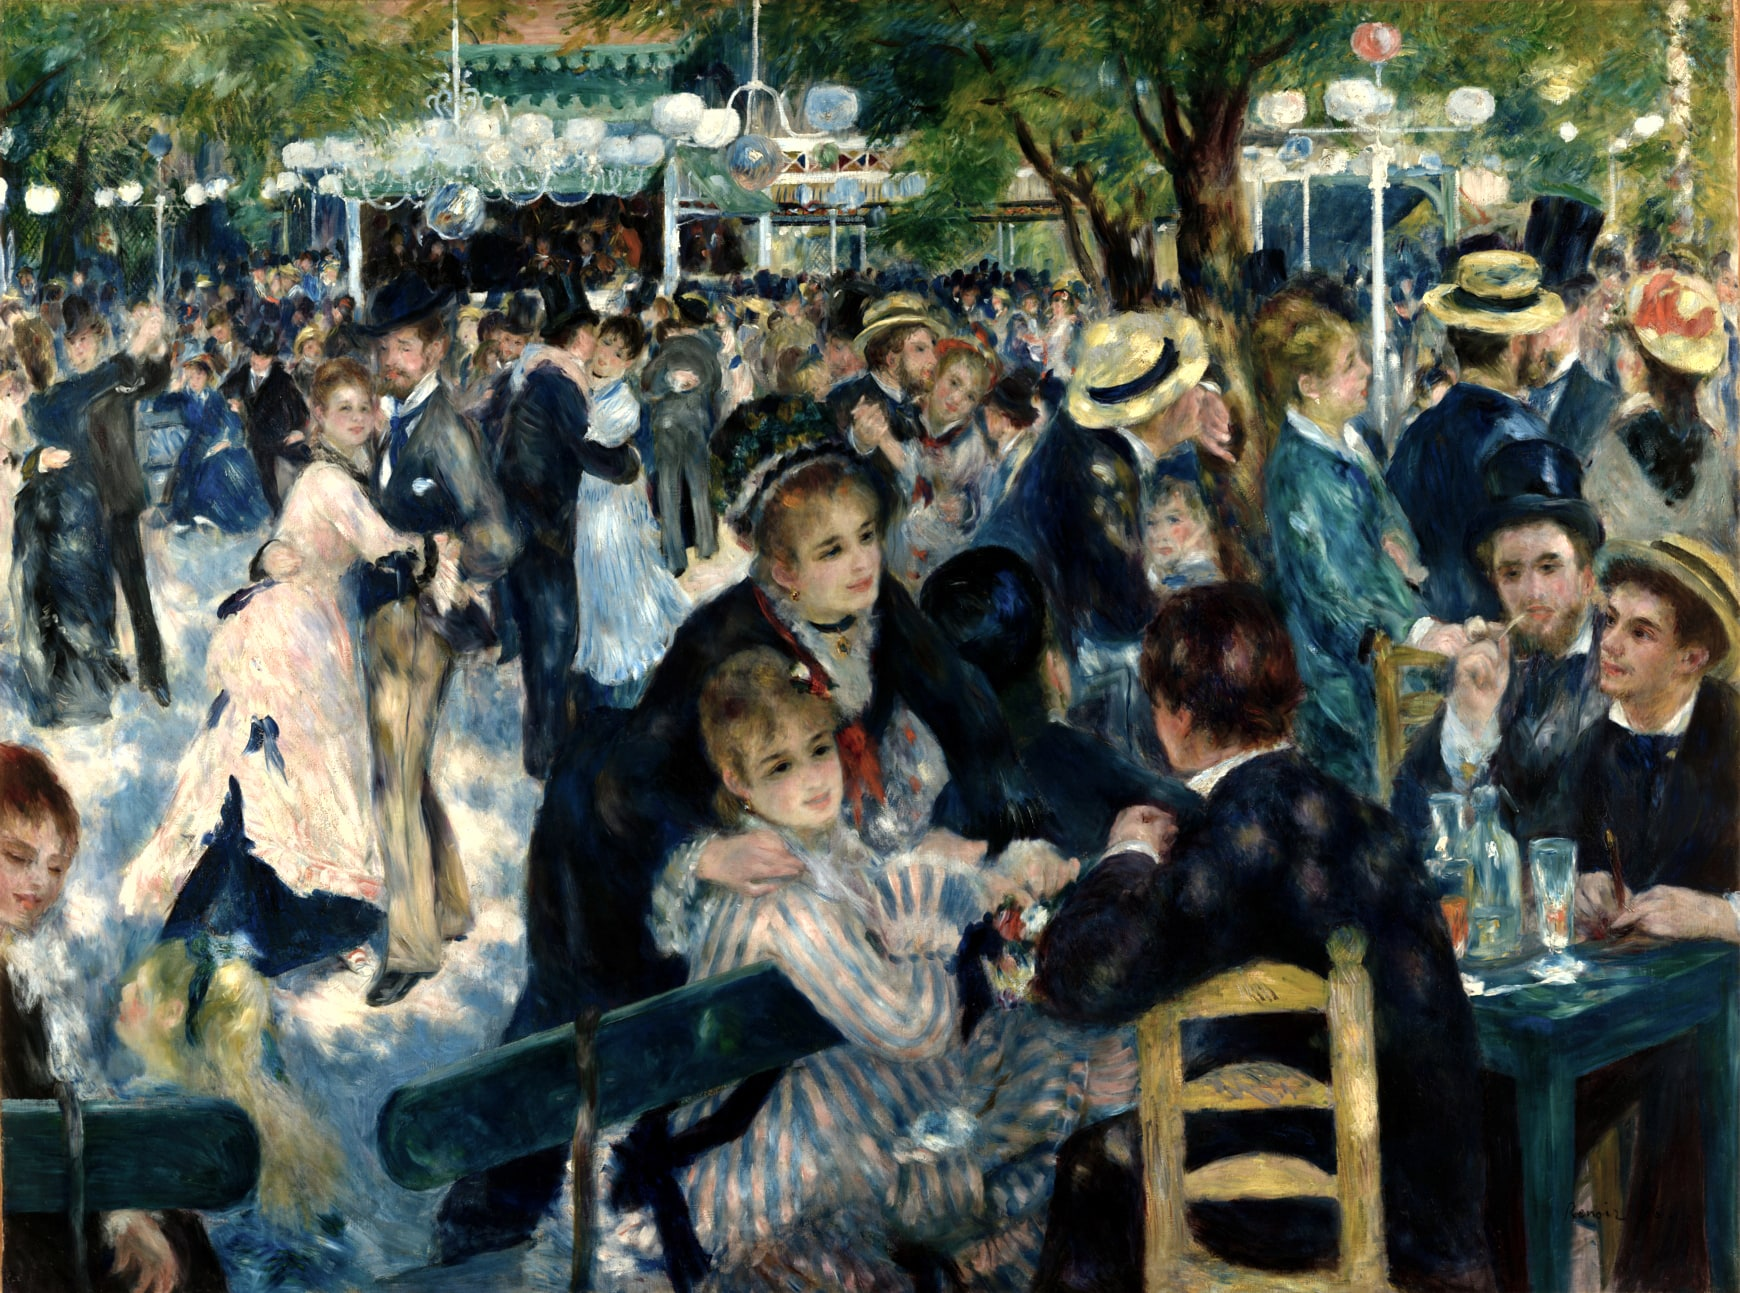 Auguste_Renoir_-_Dance_at_Le_Moulin_de_la_Galette_-_Musée_d'Orsay_RF_2739_(derivative_work_-_AutoContrast_edit_in_LCH_space).jpg